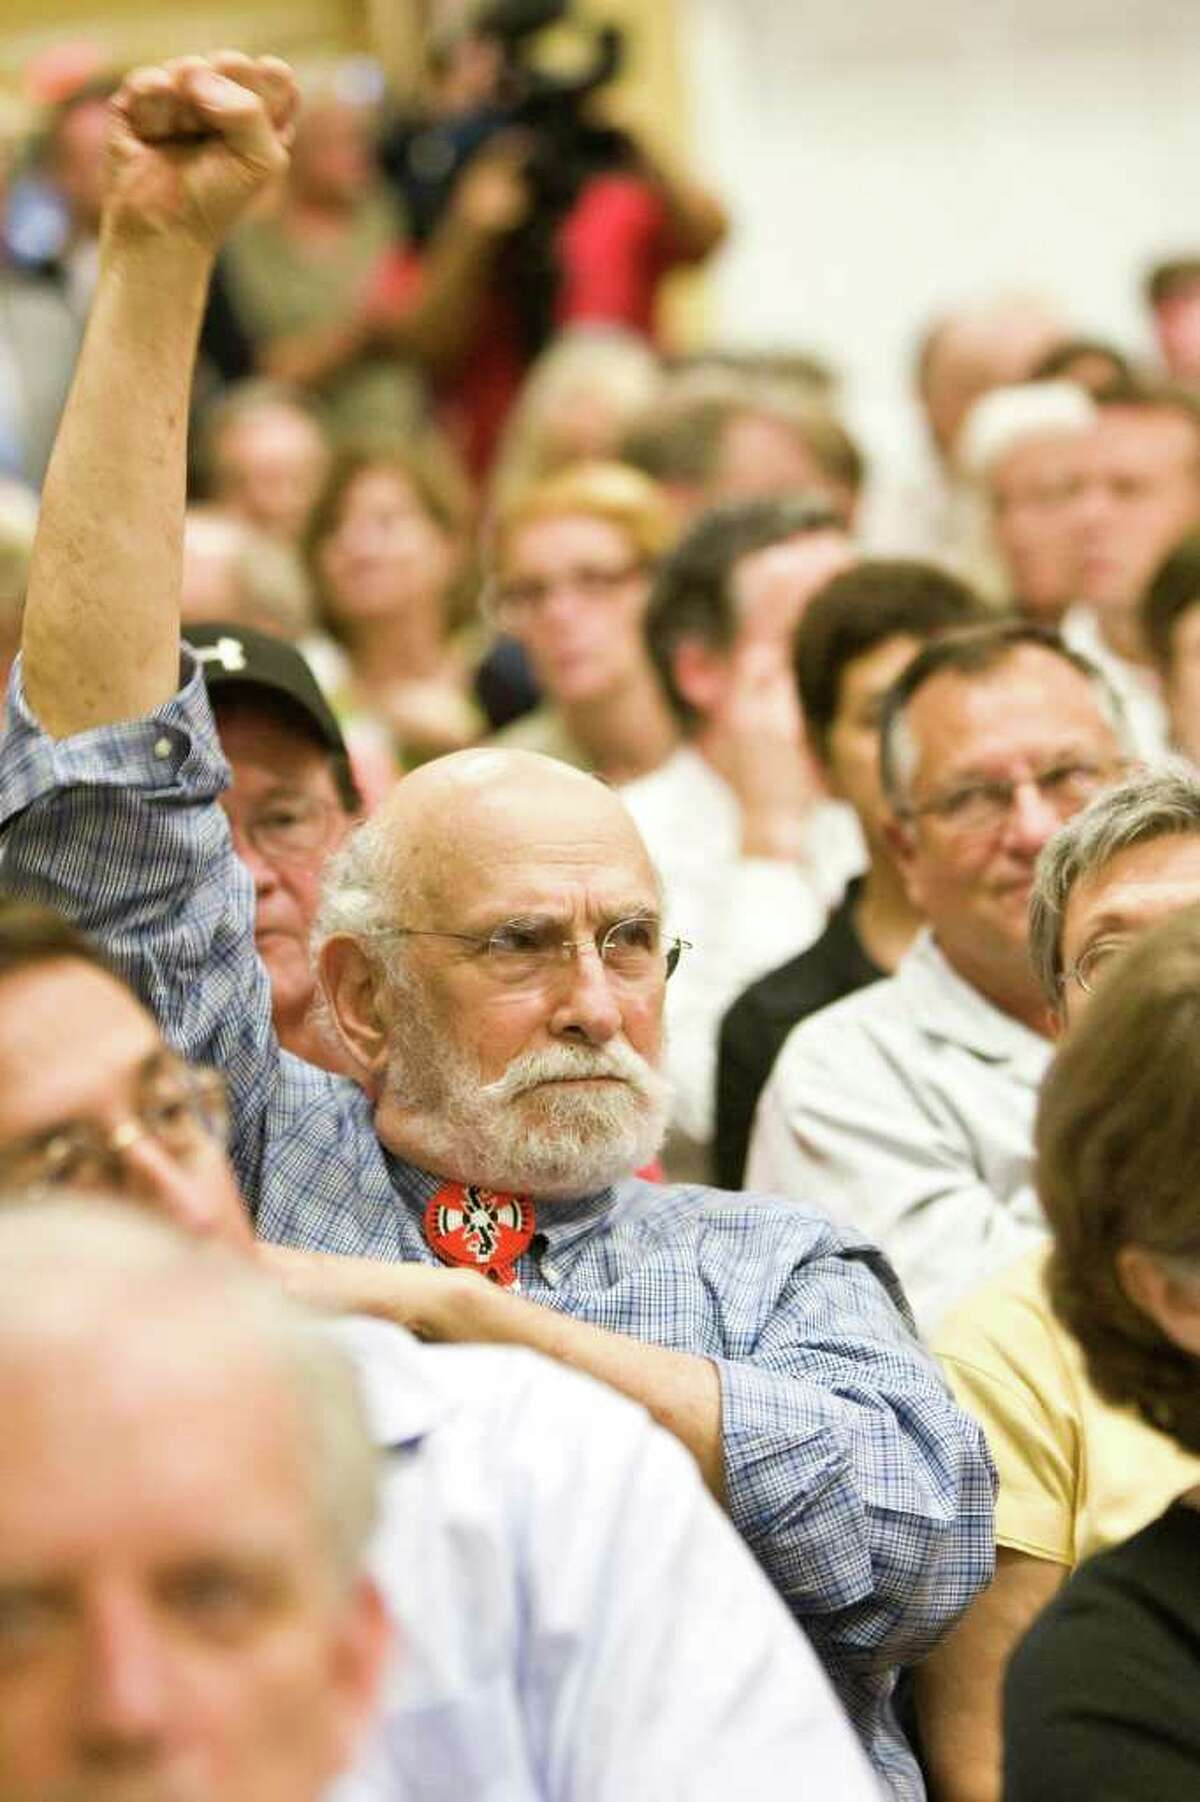 In 2009, Charlie McCarthy shows his support for the project's opponents at a meeting held at Poe Elementary.